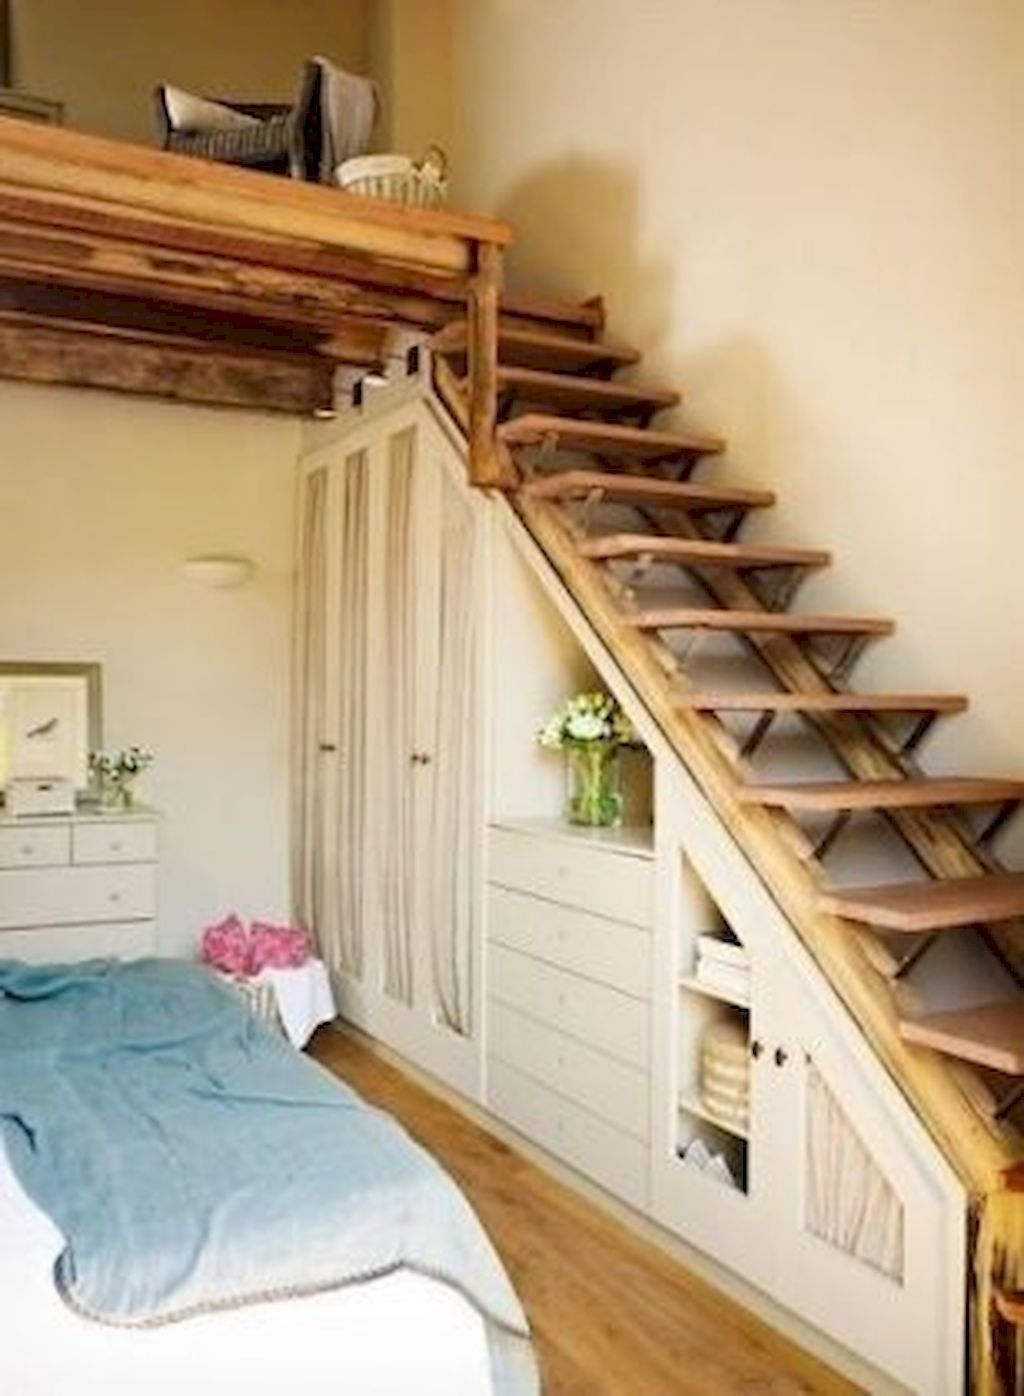 Loft bedroom staircase  Incredible loft stair ideas for small room   Loft stairs Small